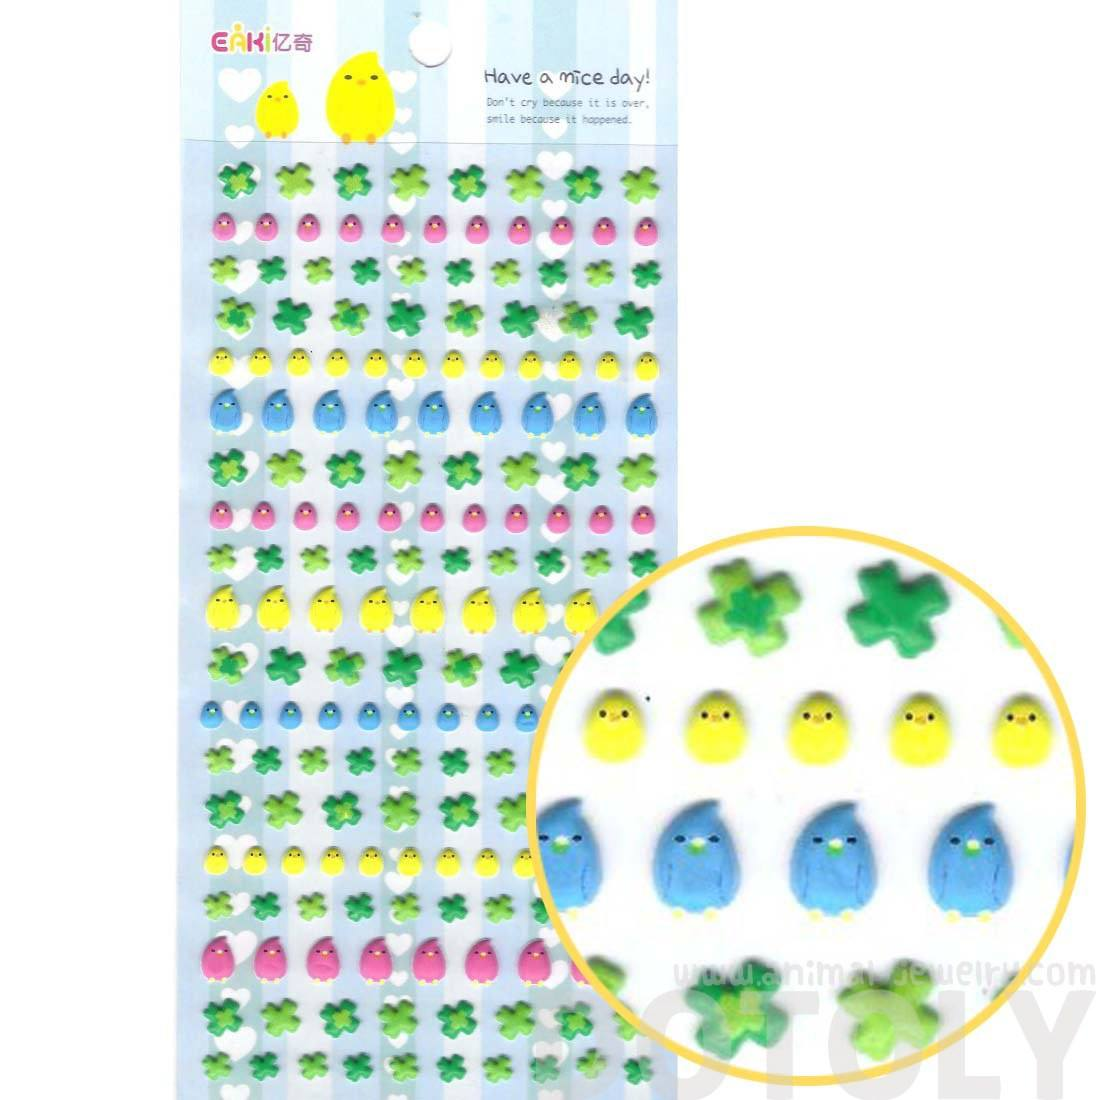 Baby Chick Bird andd Four Leaf Clovers Shaped Puffy Stickers for Kids